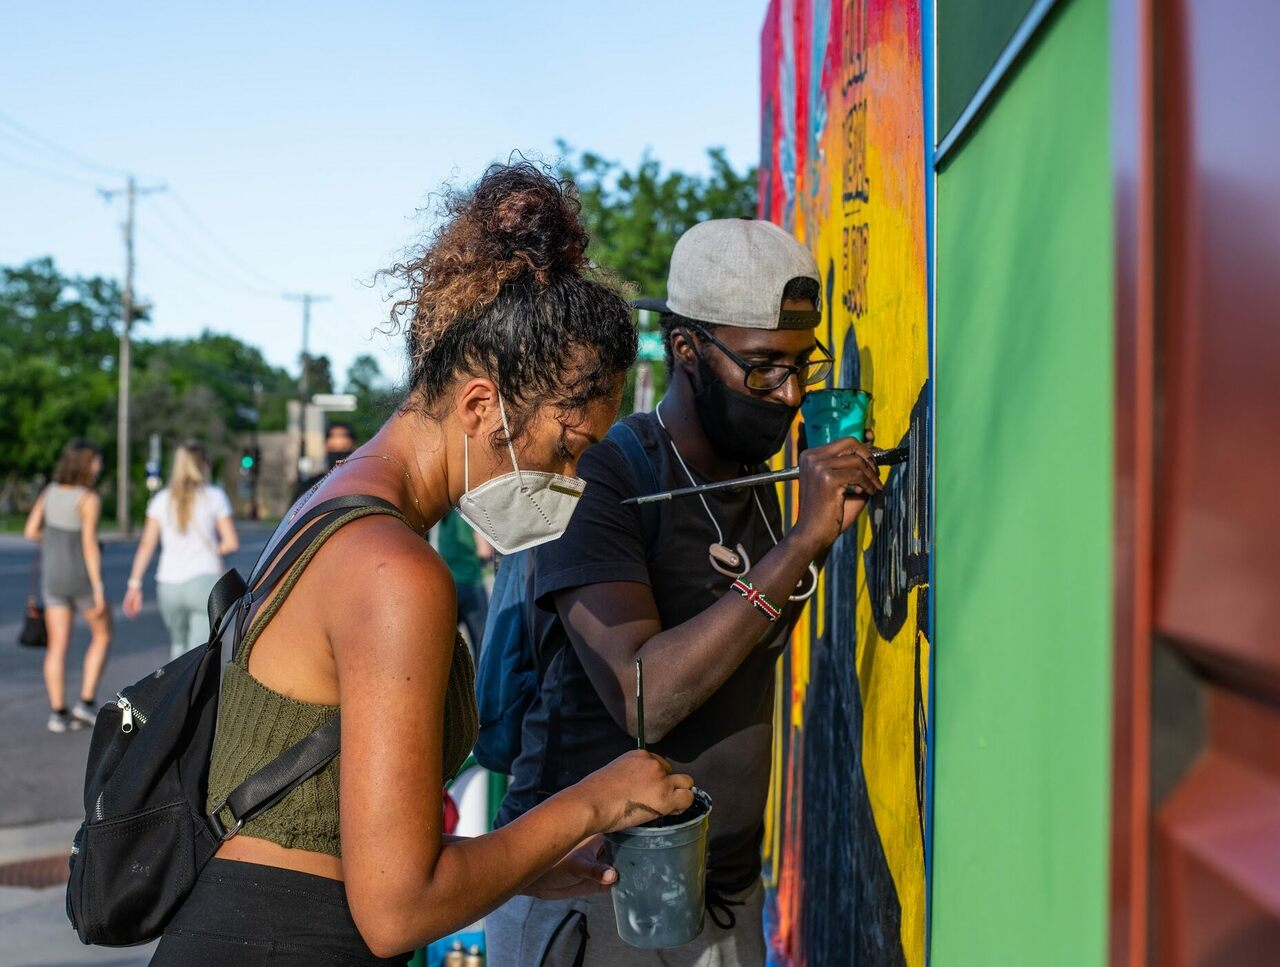 #CreativesAfterCurfew includes over 40 artists in a decentralized power structure, without a clear leader. But most of their murals have the same theme: fighting racial injustice and systemic racism.